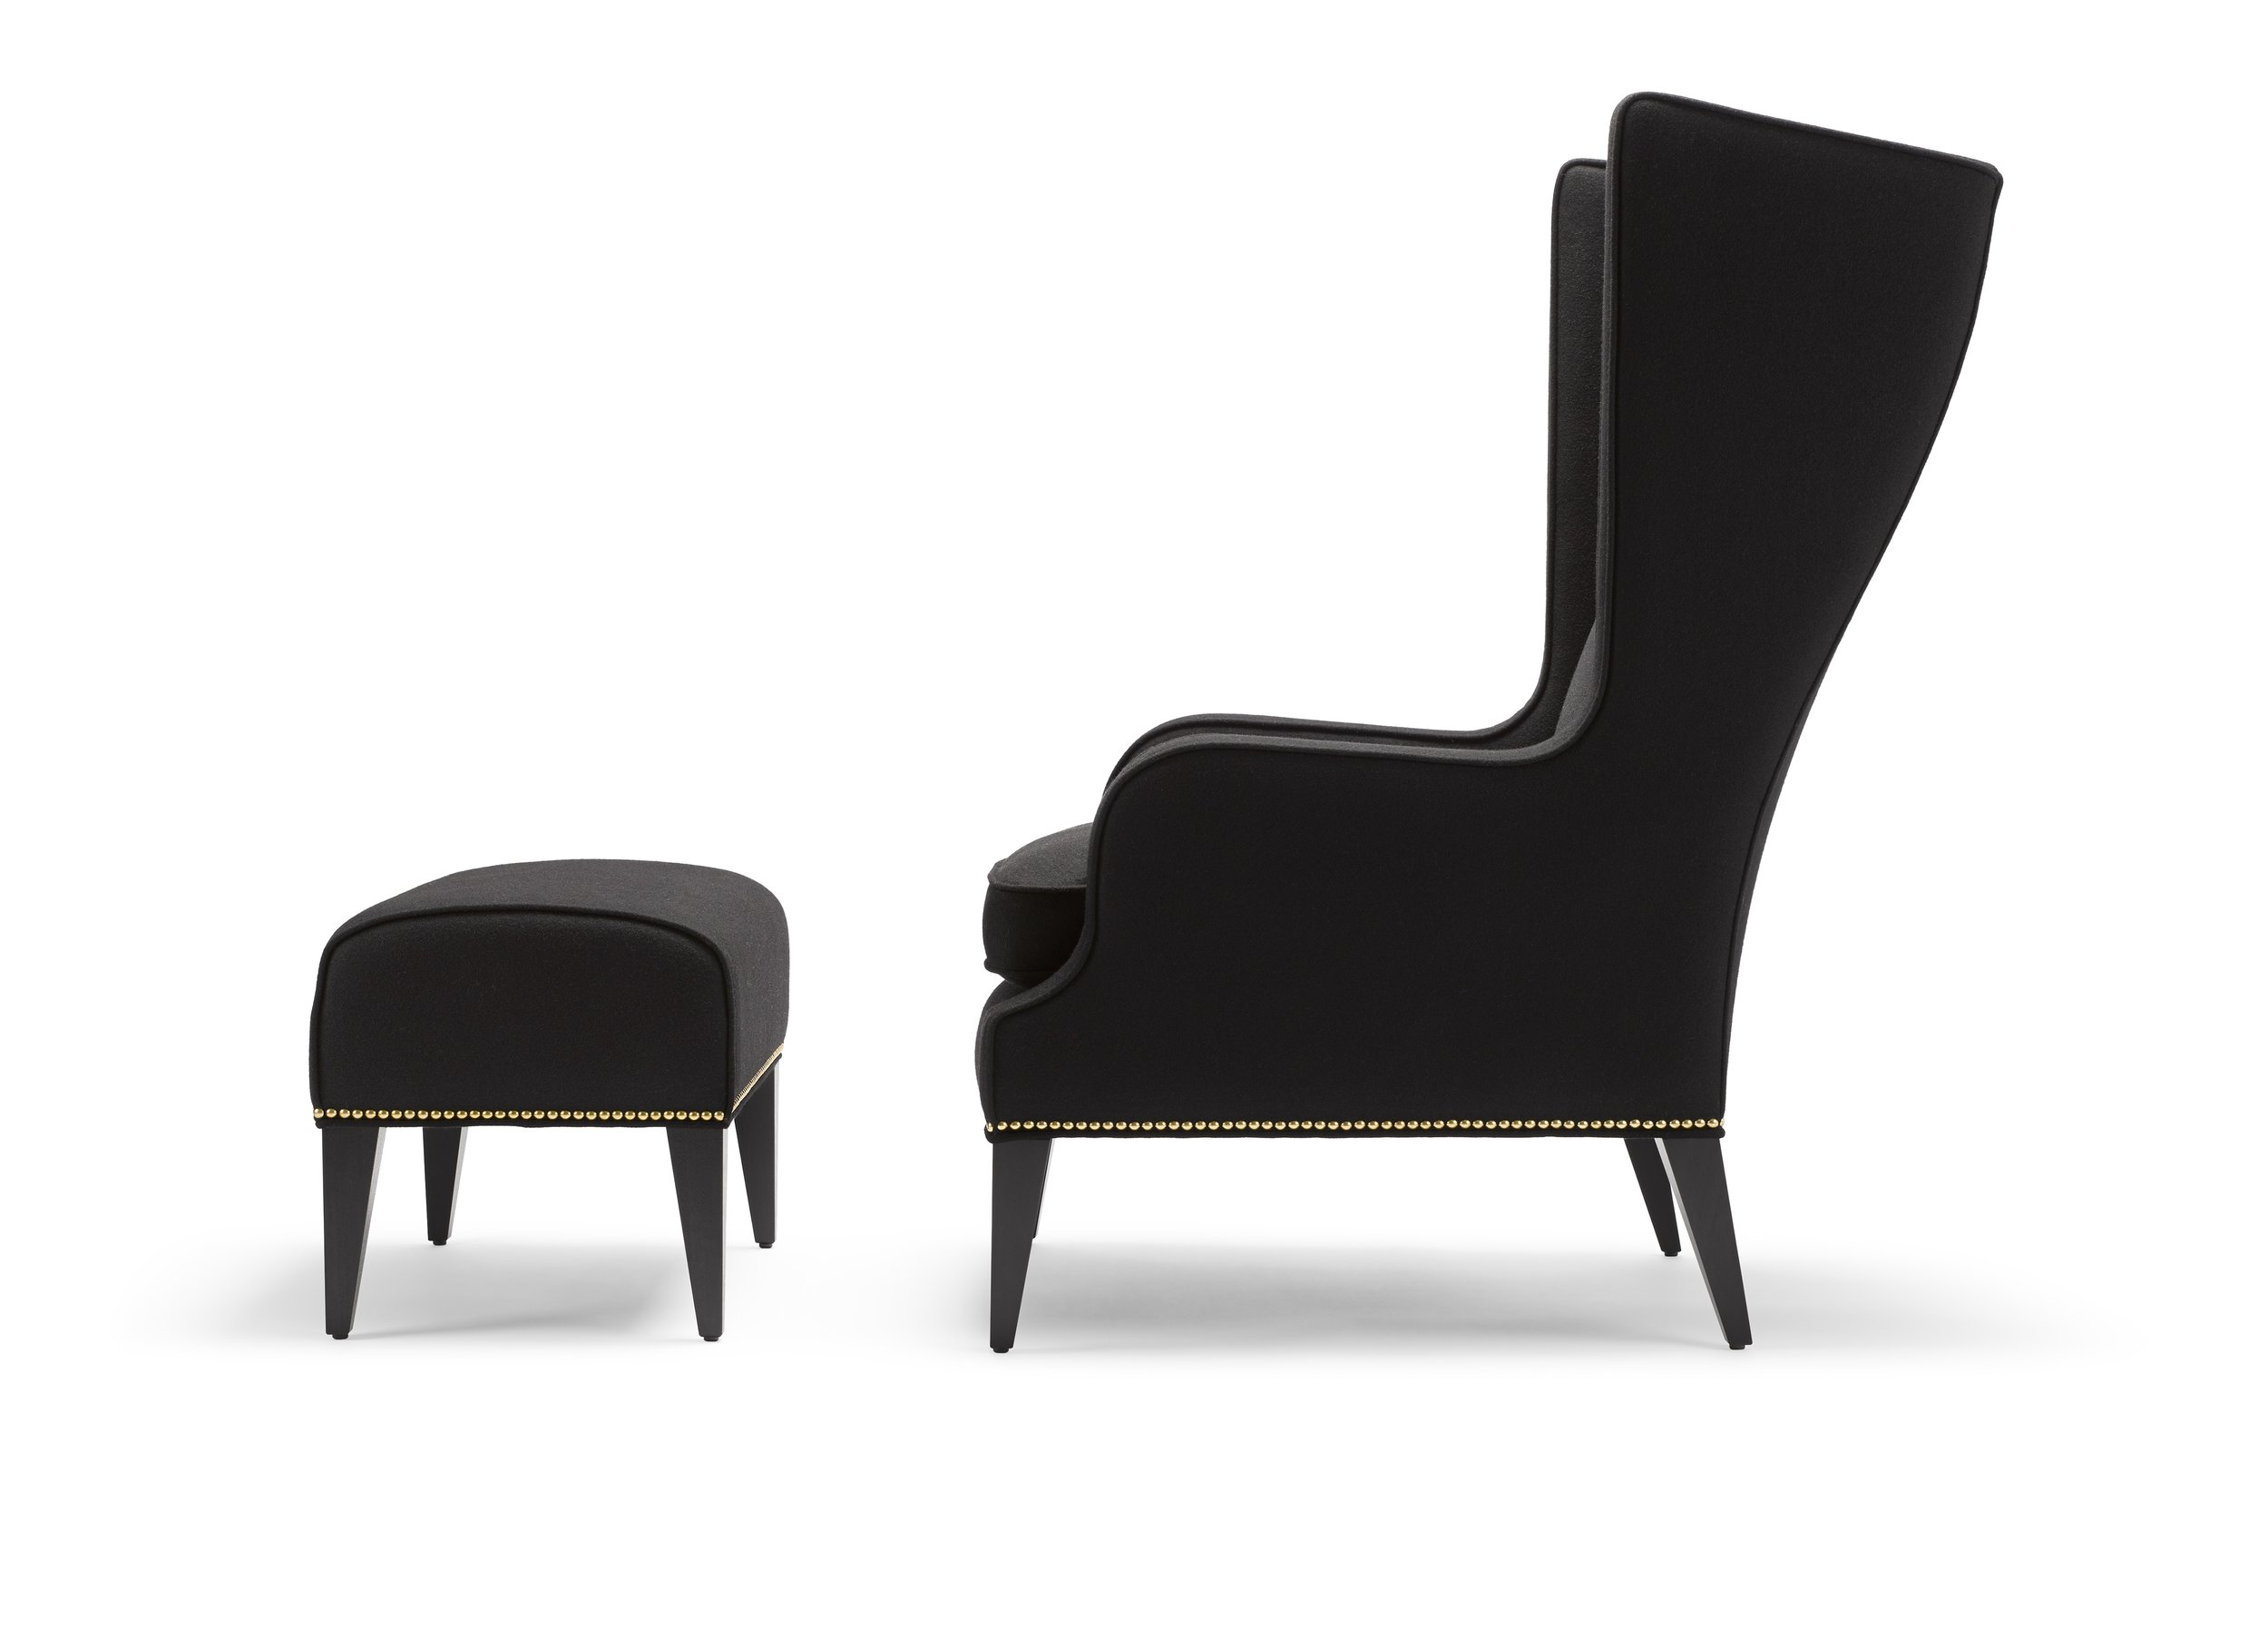 the alae wing chair - The Alae is available as a wing or lounge chair and features sleek sculptural lines. The seat is softened perfectly with a luxurious feather and down wrapped cushion. Upholstered in Moon Melton Marylebone (100% British), with legs in black lacquered walnut and upholstery nails in brass♦ Construction: solid beech frame, sprung seat and webbed back with a feather and down wrapped seat cushion.♦ Height: 115cm | Length: 70cm | Depth: 91cm♦ Hand Signed No. 686Trade Price: £1,820 + vatQty: 1